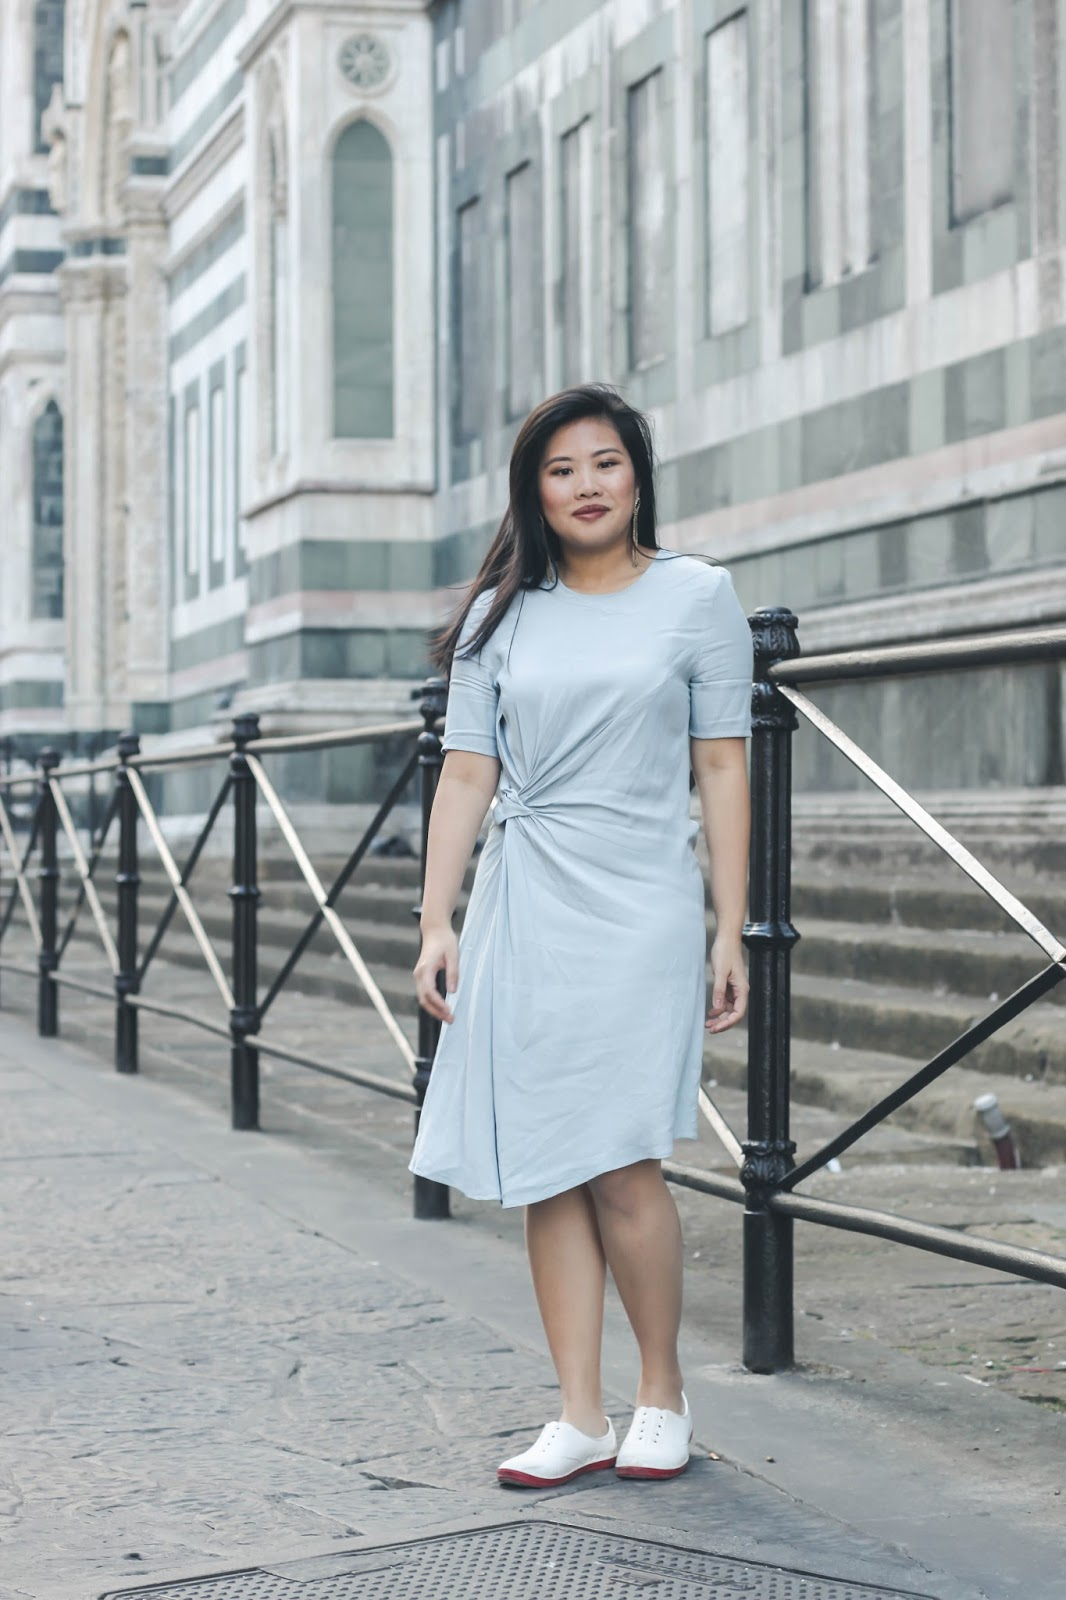 singapore blogger look book style fashion photographer street italy europe summer holiday florence